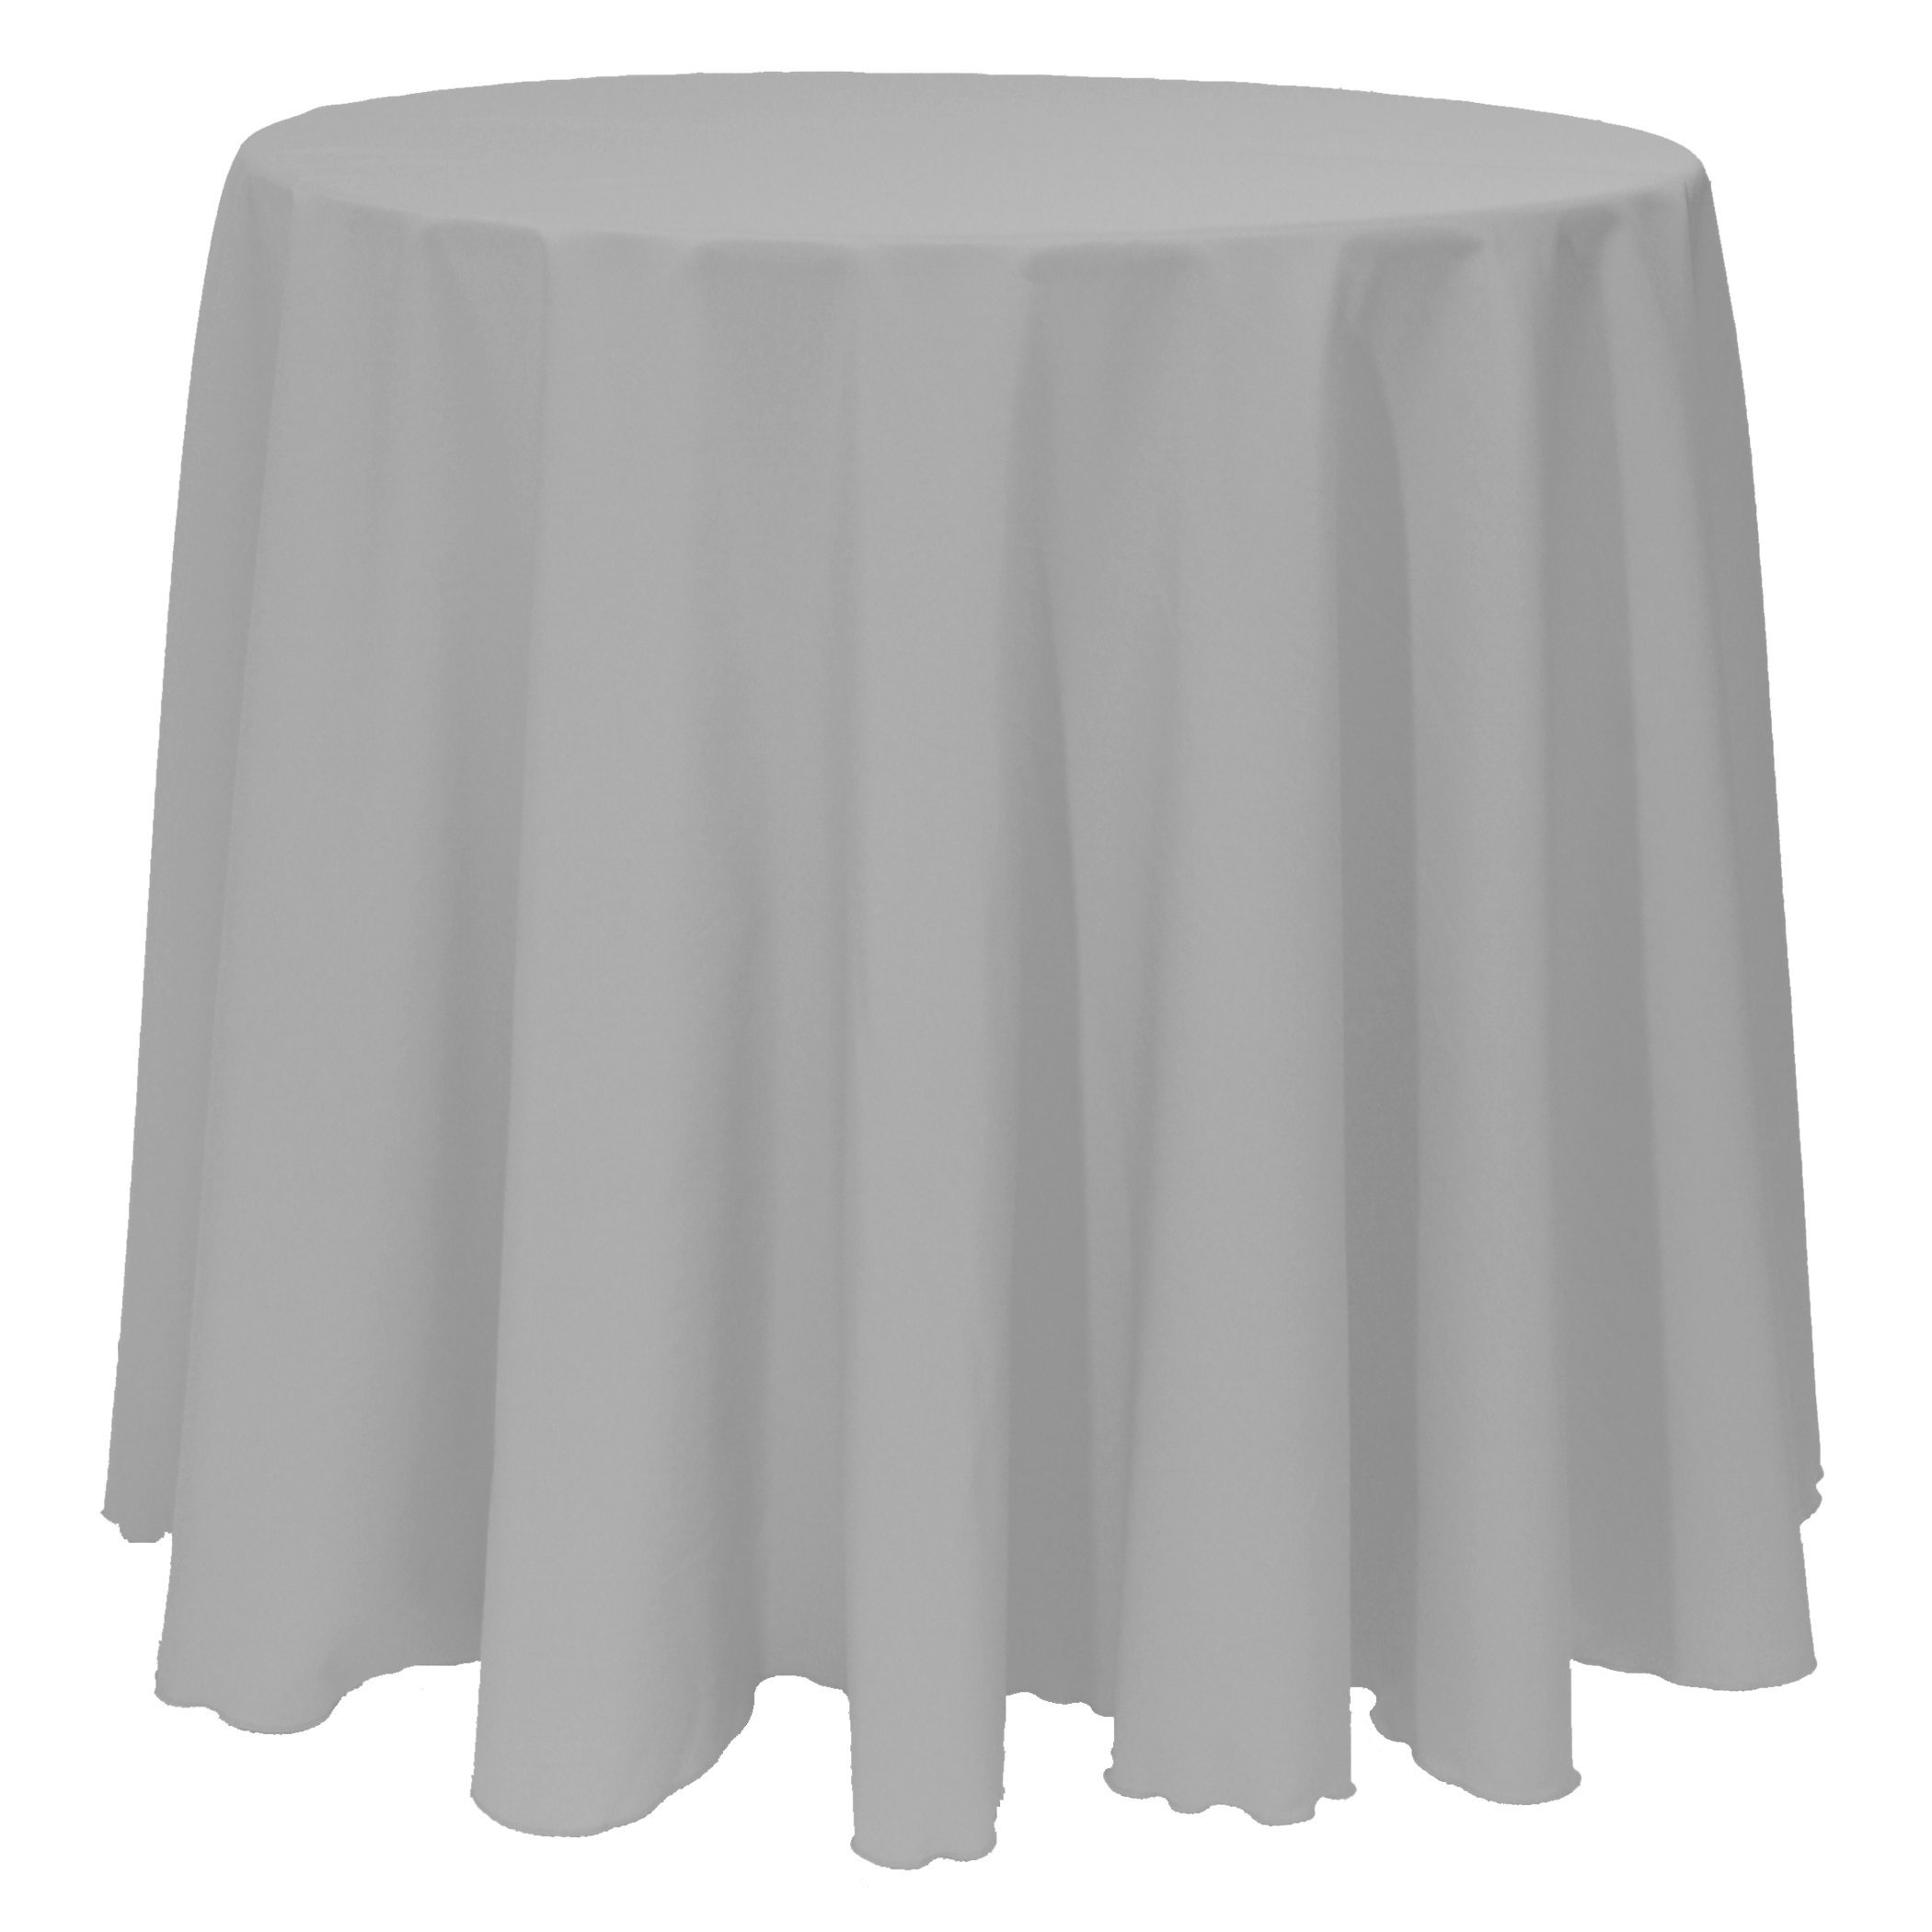 Ultimate Textile (5 Pack) 90-Inch Round Polyester Linen Tablecloth - for Wedding, Restaurant or Banquet use, Silver